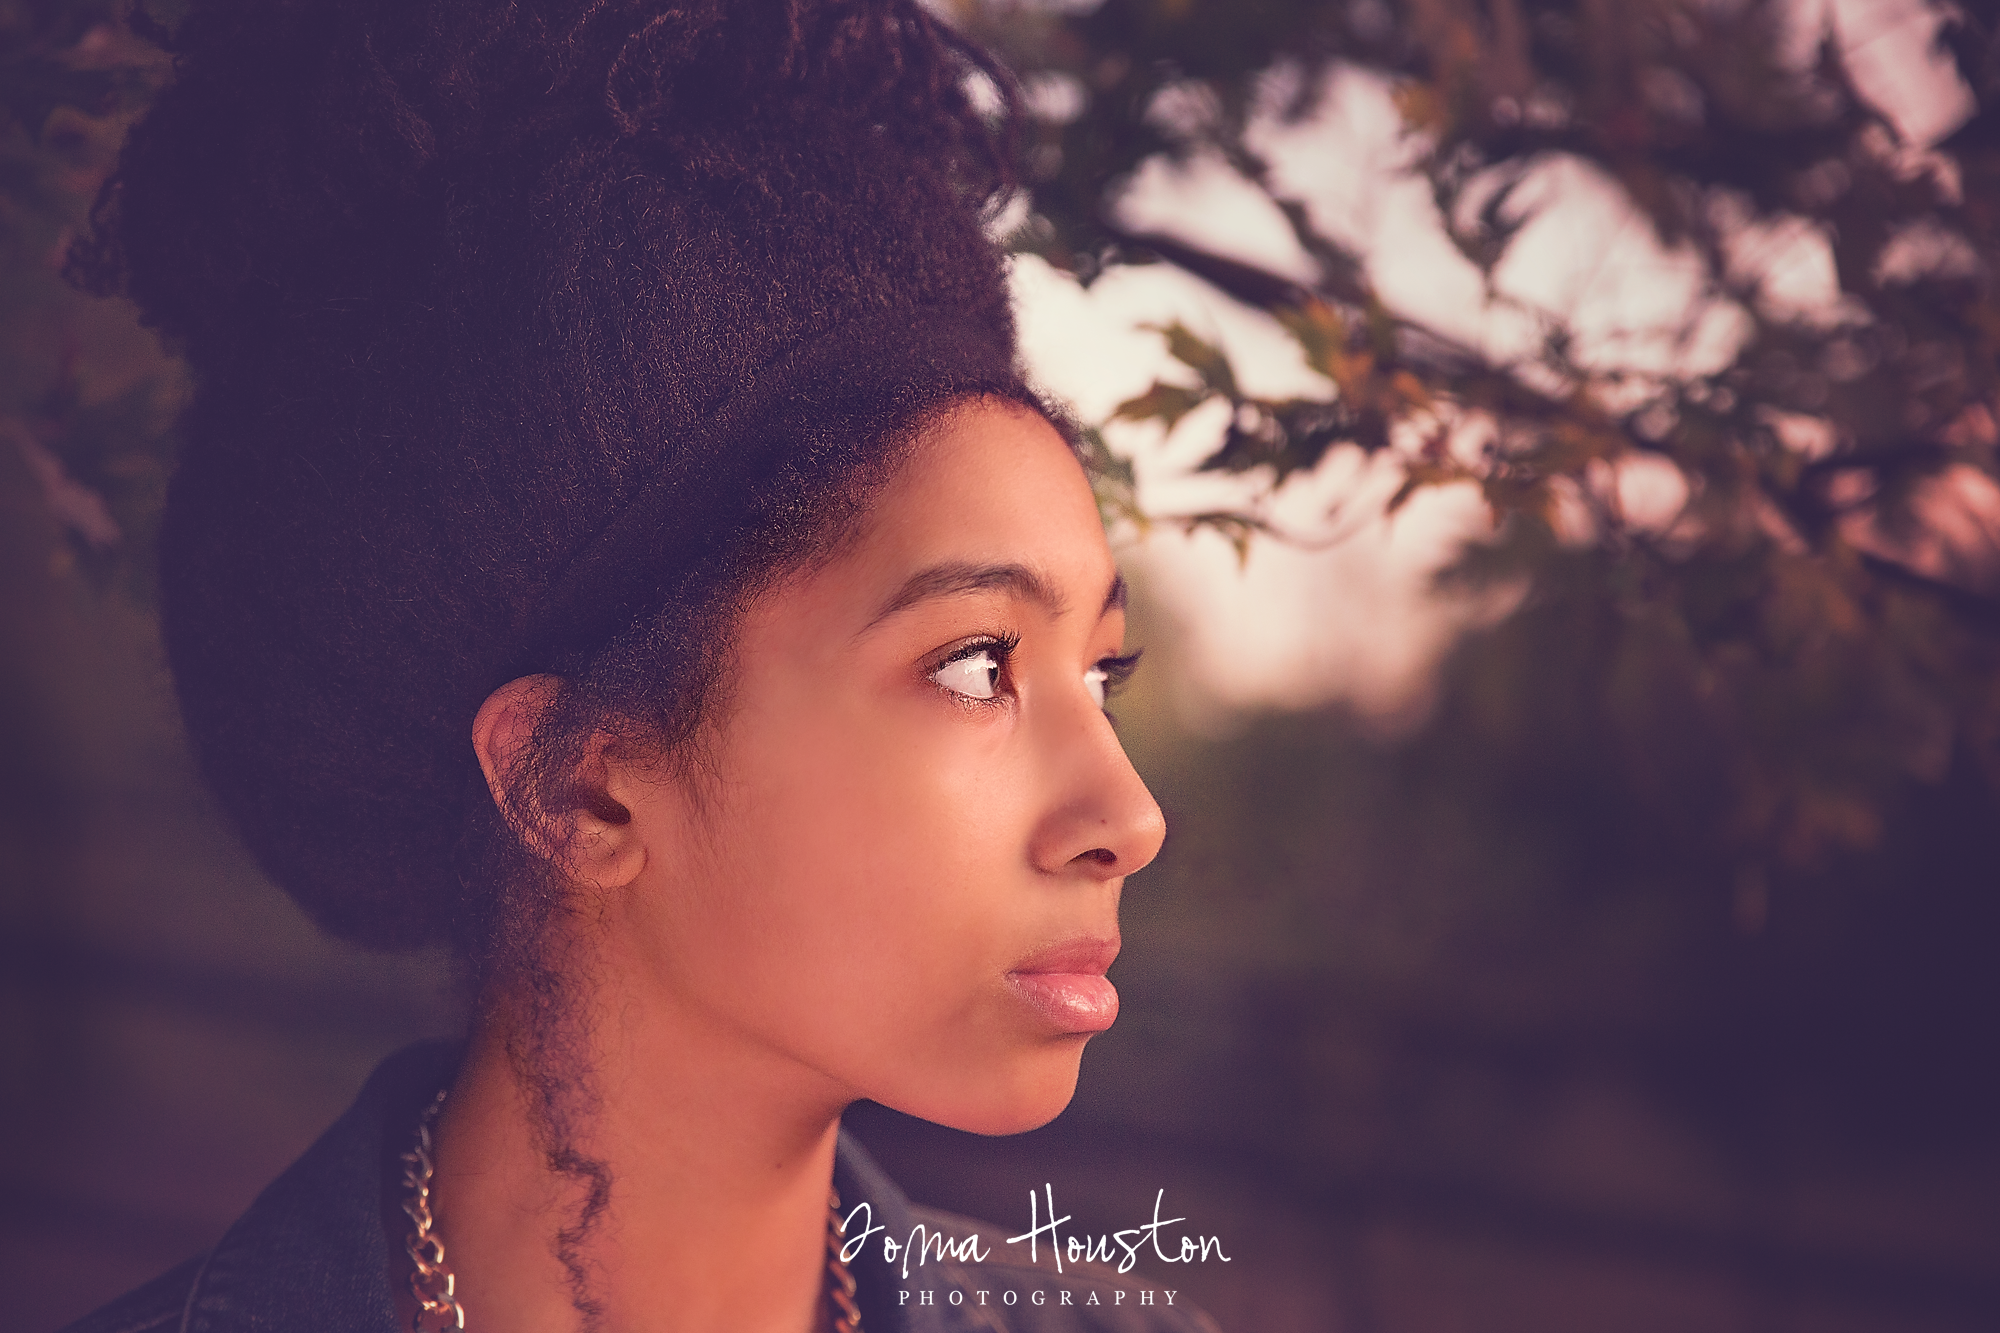 Teen Photographer | Toma Houston Photography